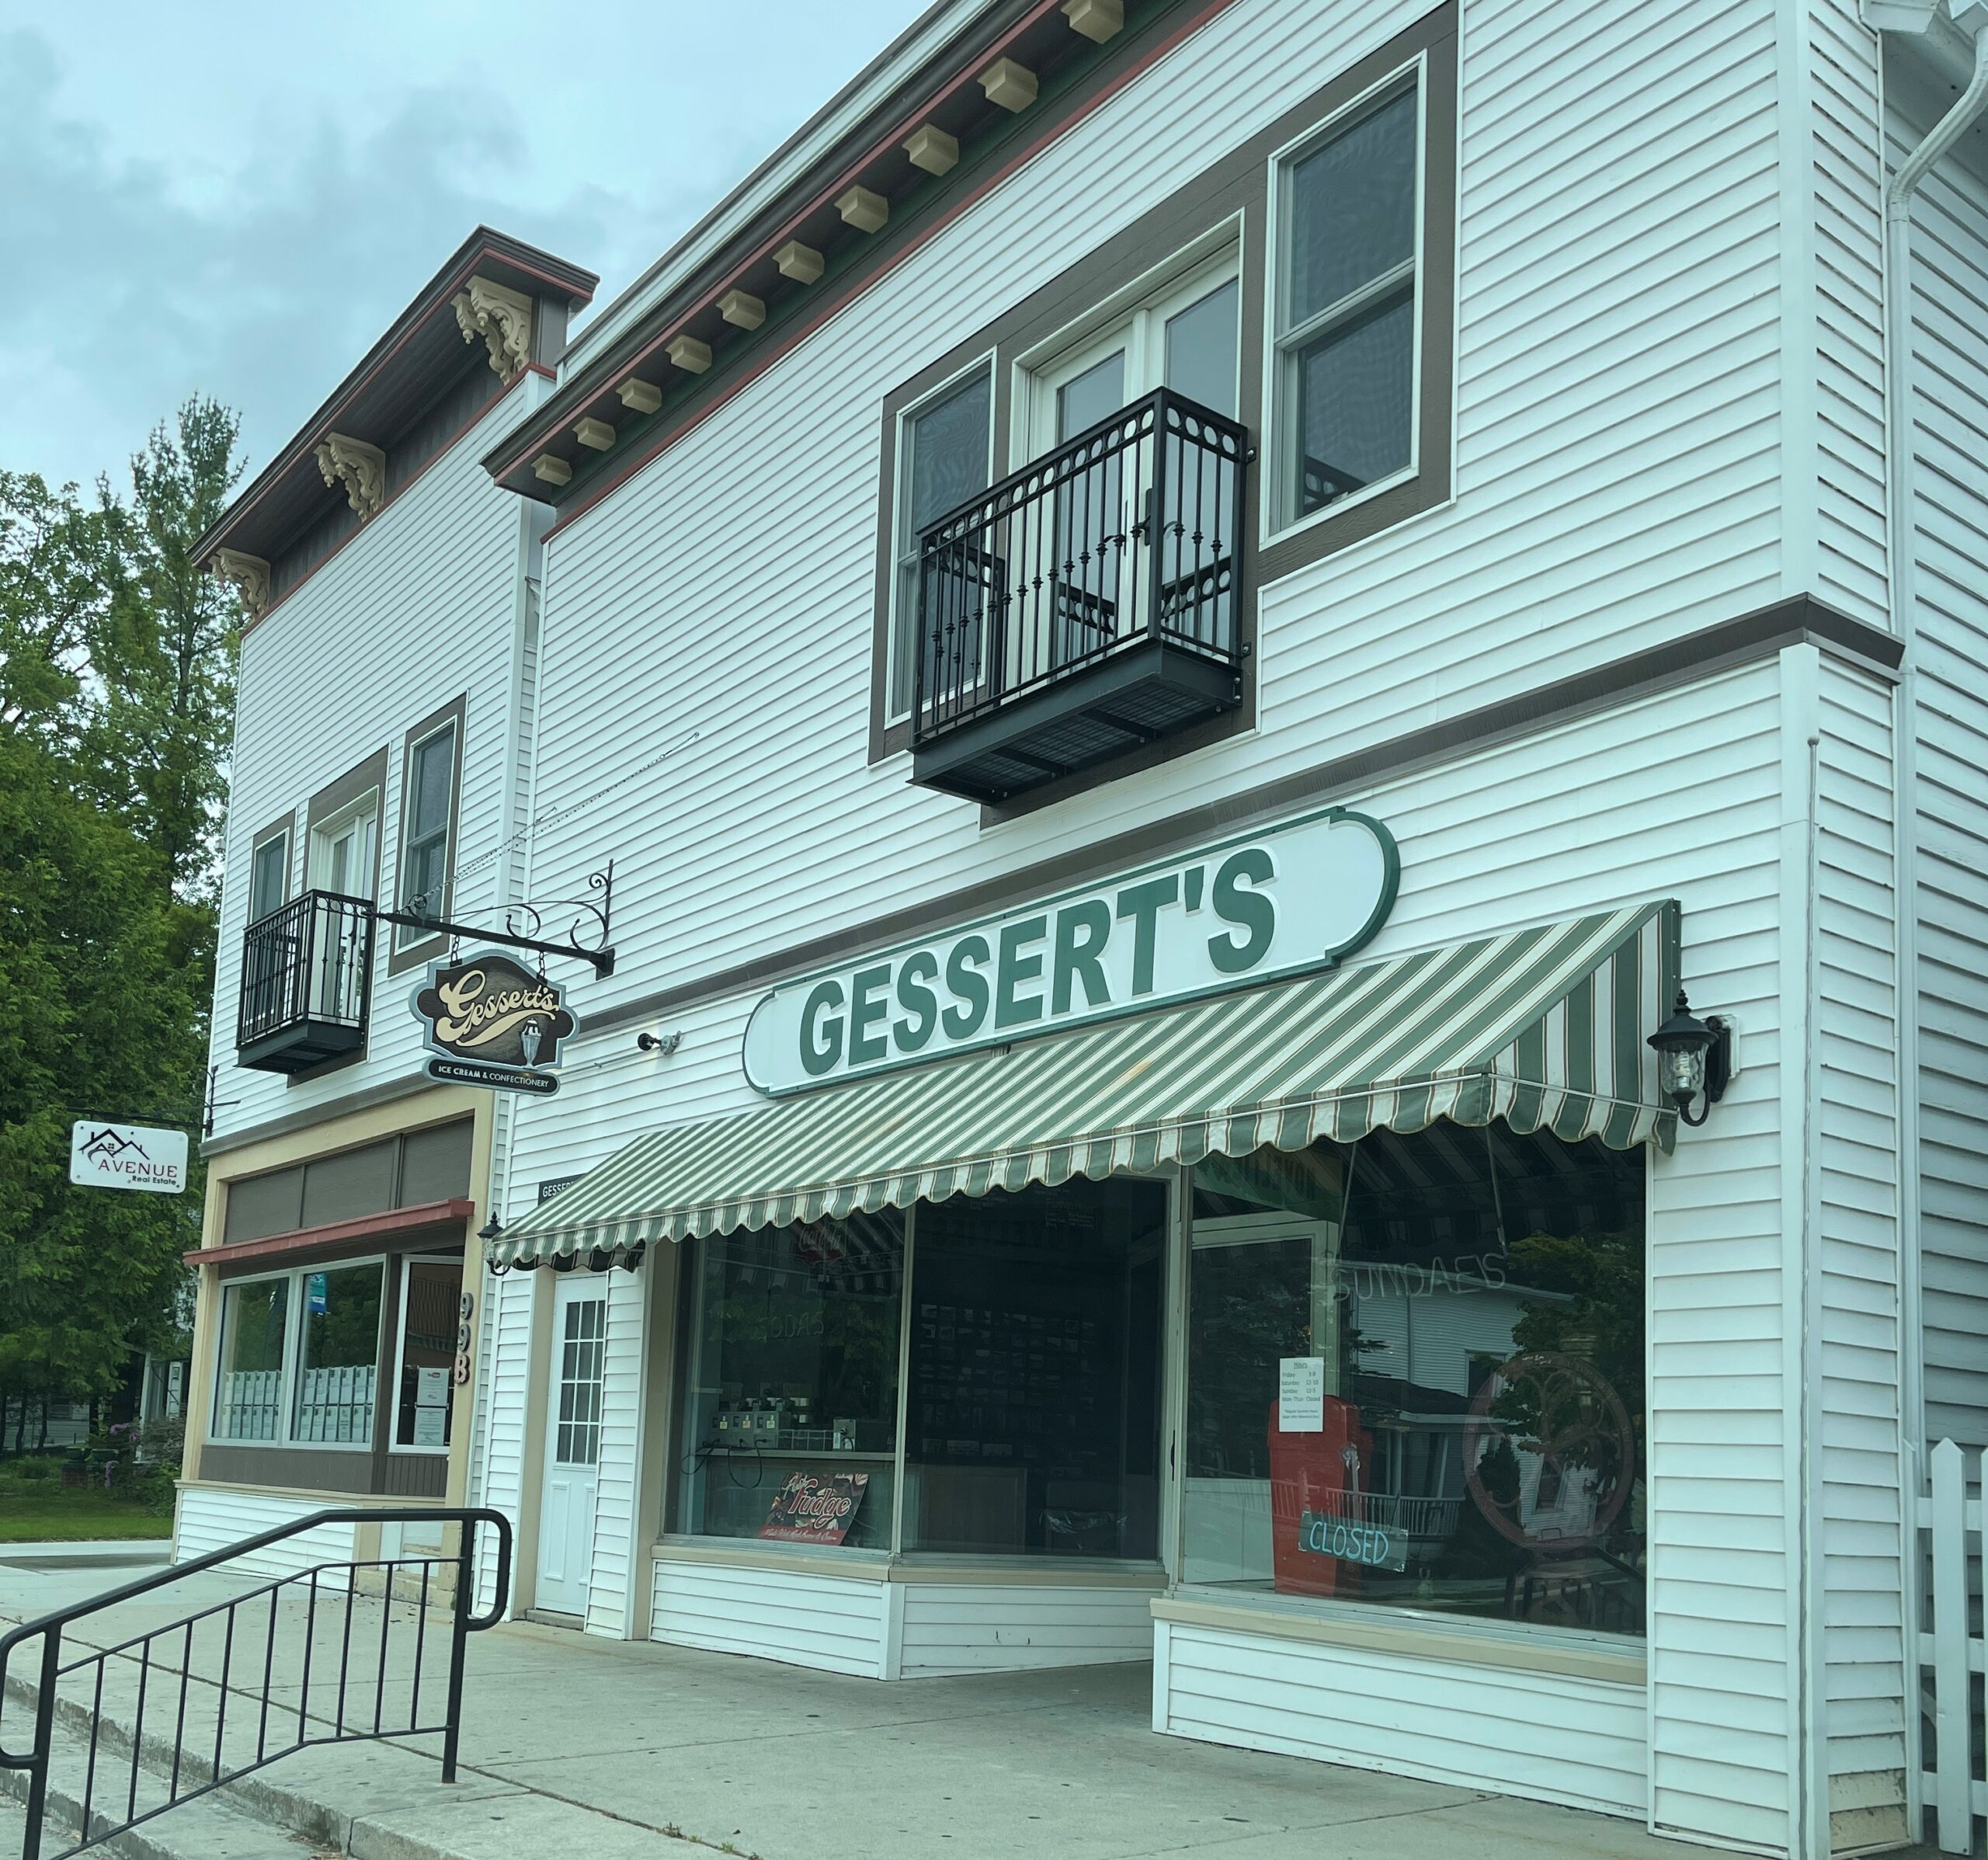 gesserts is one of the most fun elkhart lake restaurants.